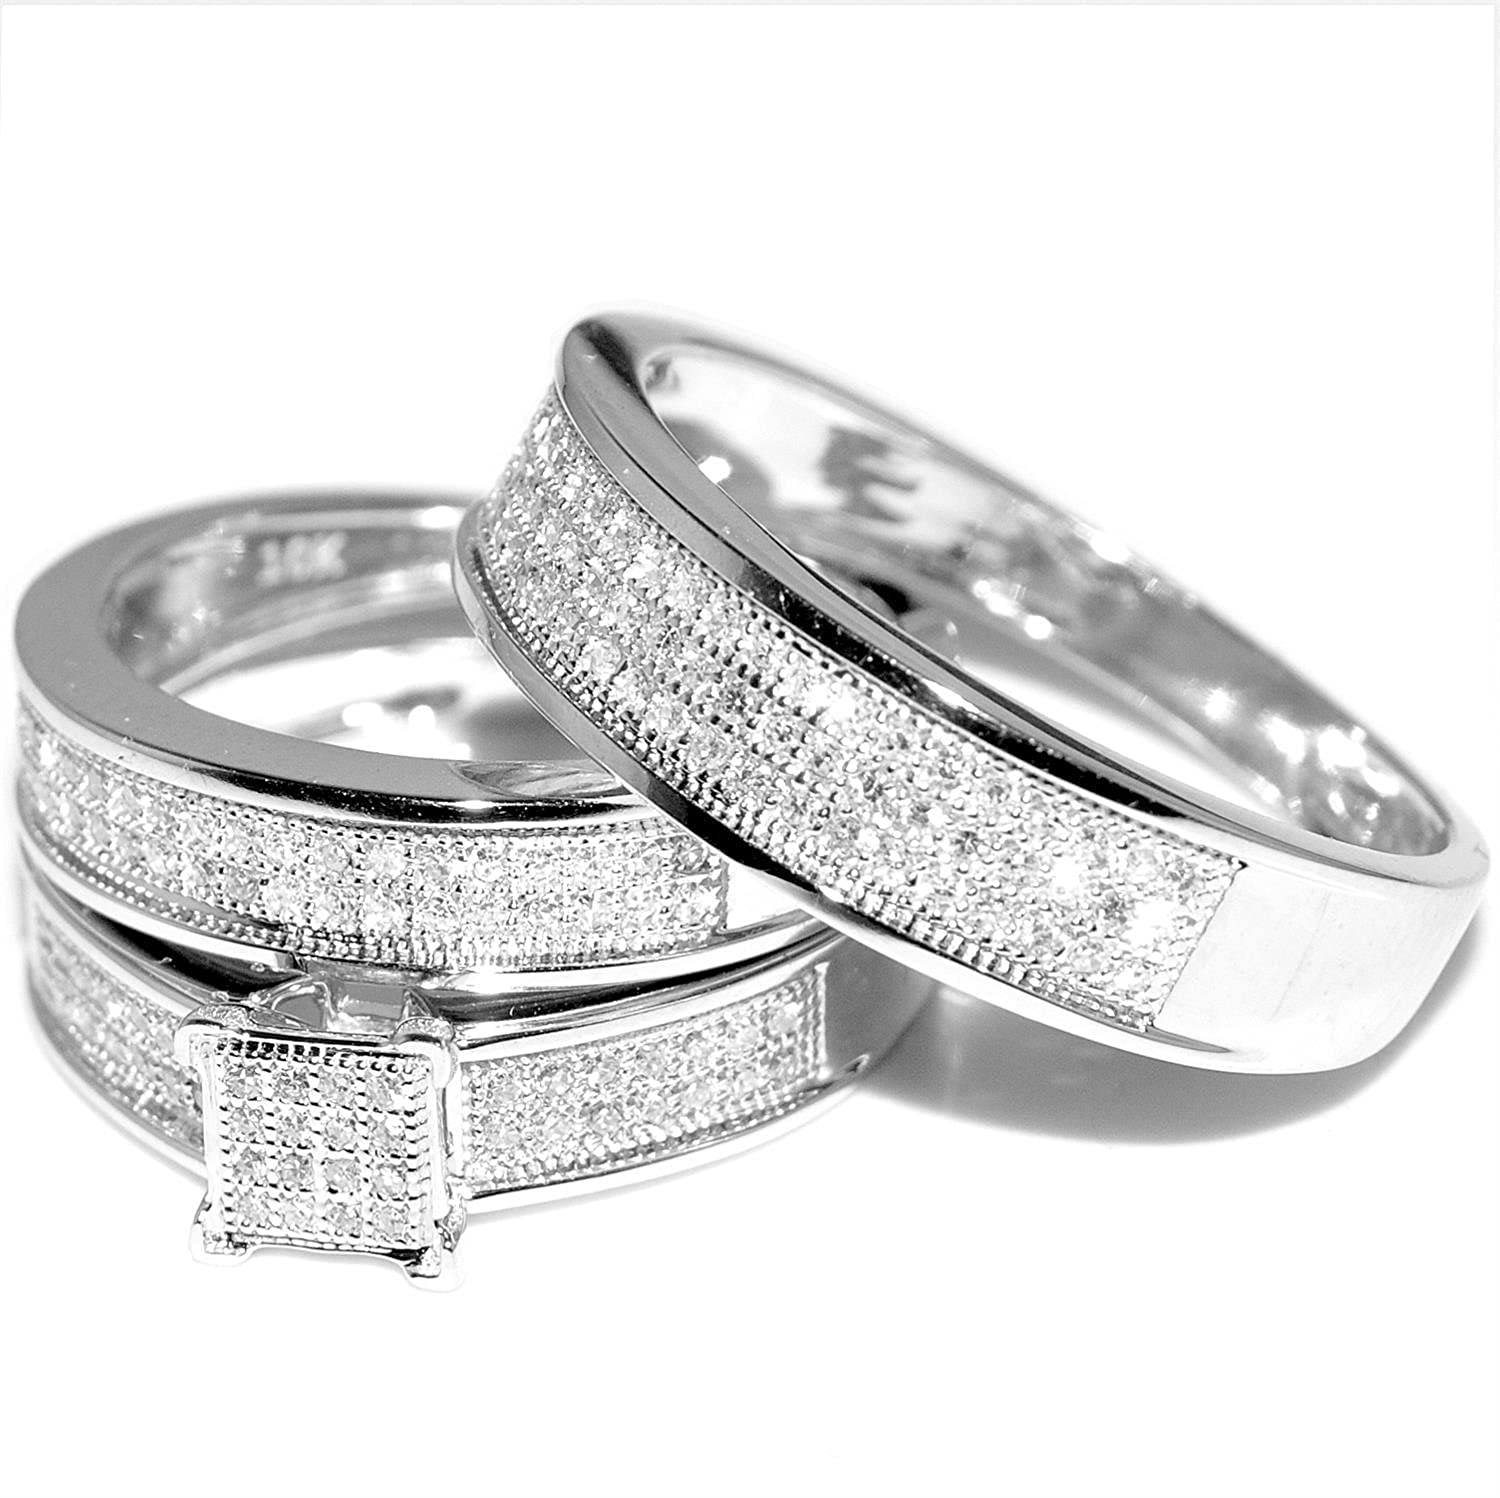 White Gold Trio Wedding Set Mens Womens Wedding Rings Matching 0.40cttw  Diamond|Amazon.com